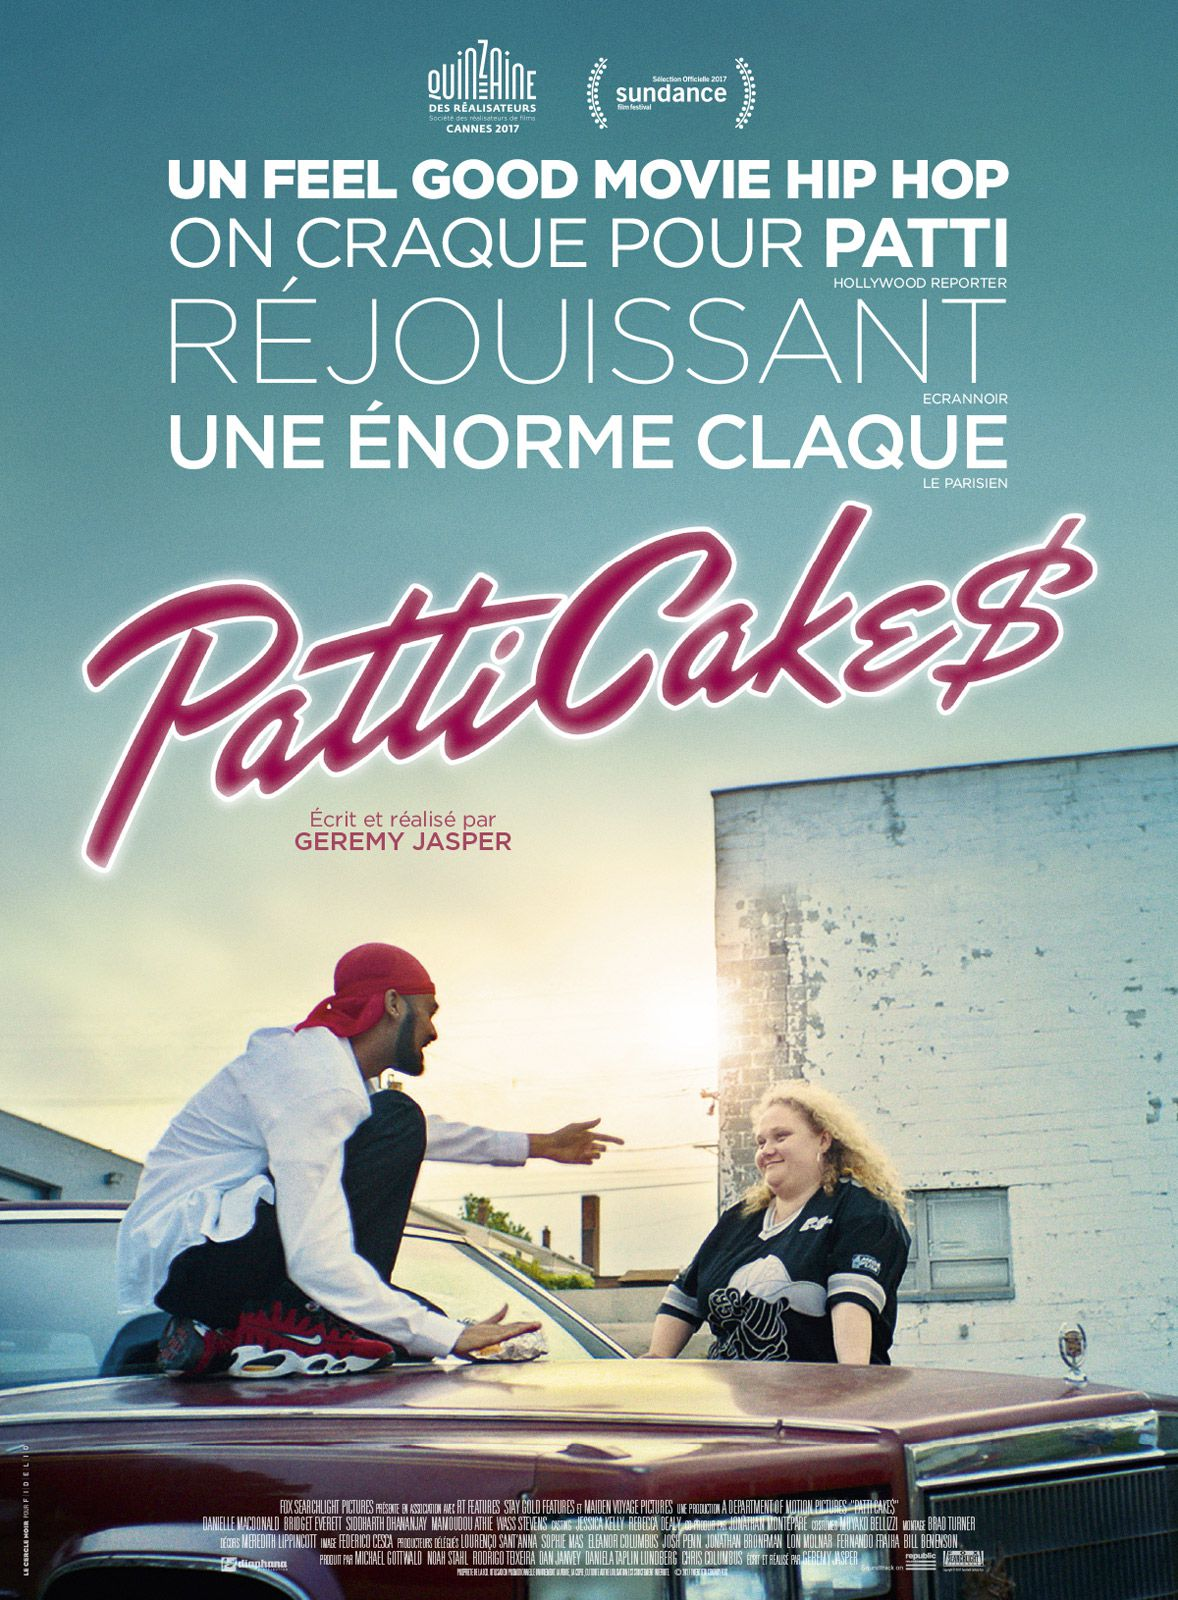 Patti Cake$ - Film (2017) streaming VF gratuit complet